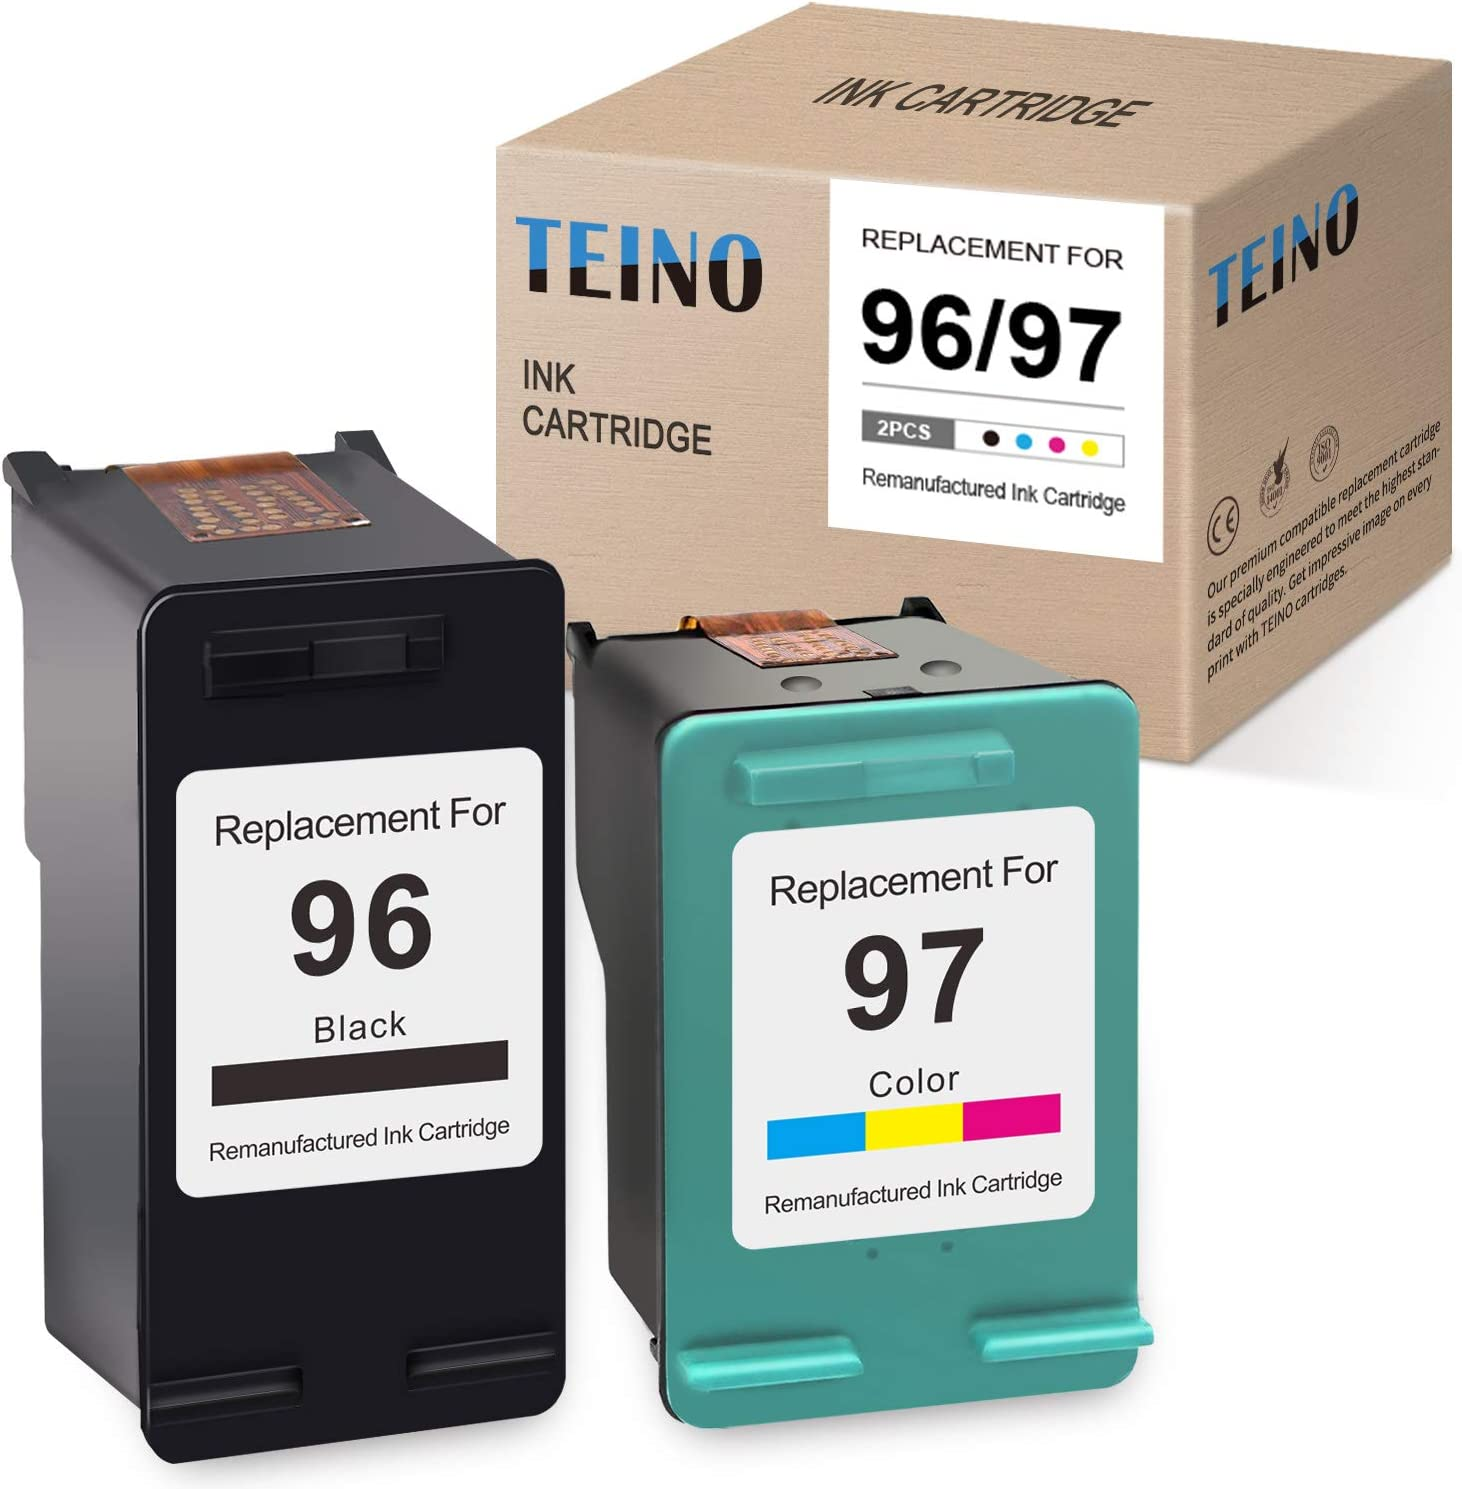 TEINO Remanufactured Ink Cartridge Replacement for HP 96 97 C9363WN C8767WN use with HP DeskJet 6940 6540 6980 5940 5740 Photosmart 8150 8450 2610 8400 OfficeJet 7310 7410 (Black, Tri-Color, 2-Pack)